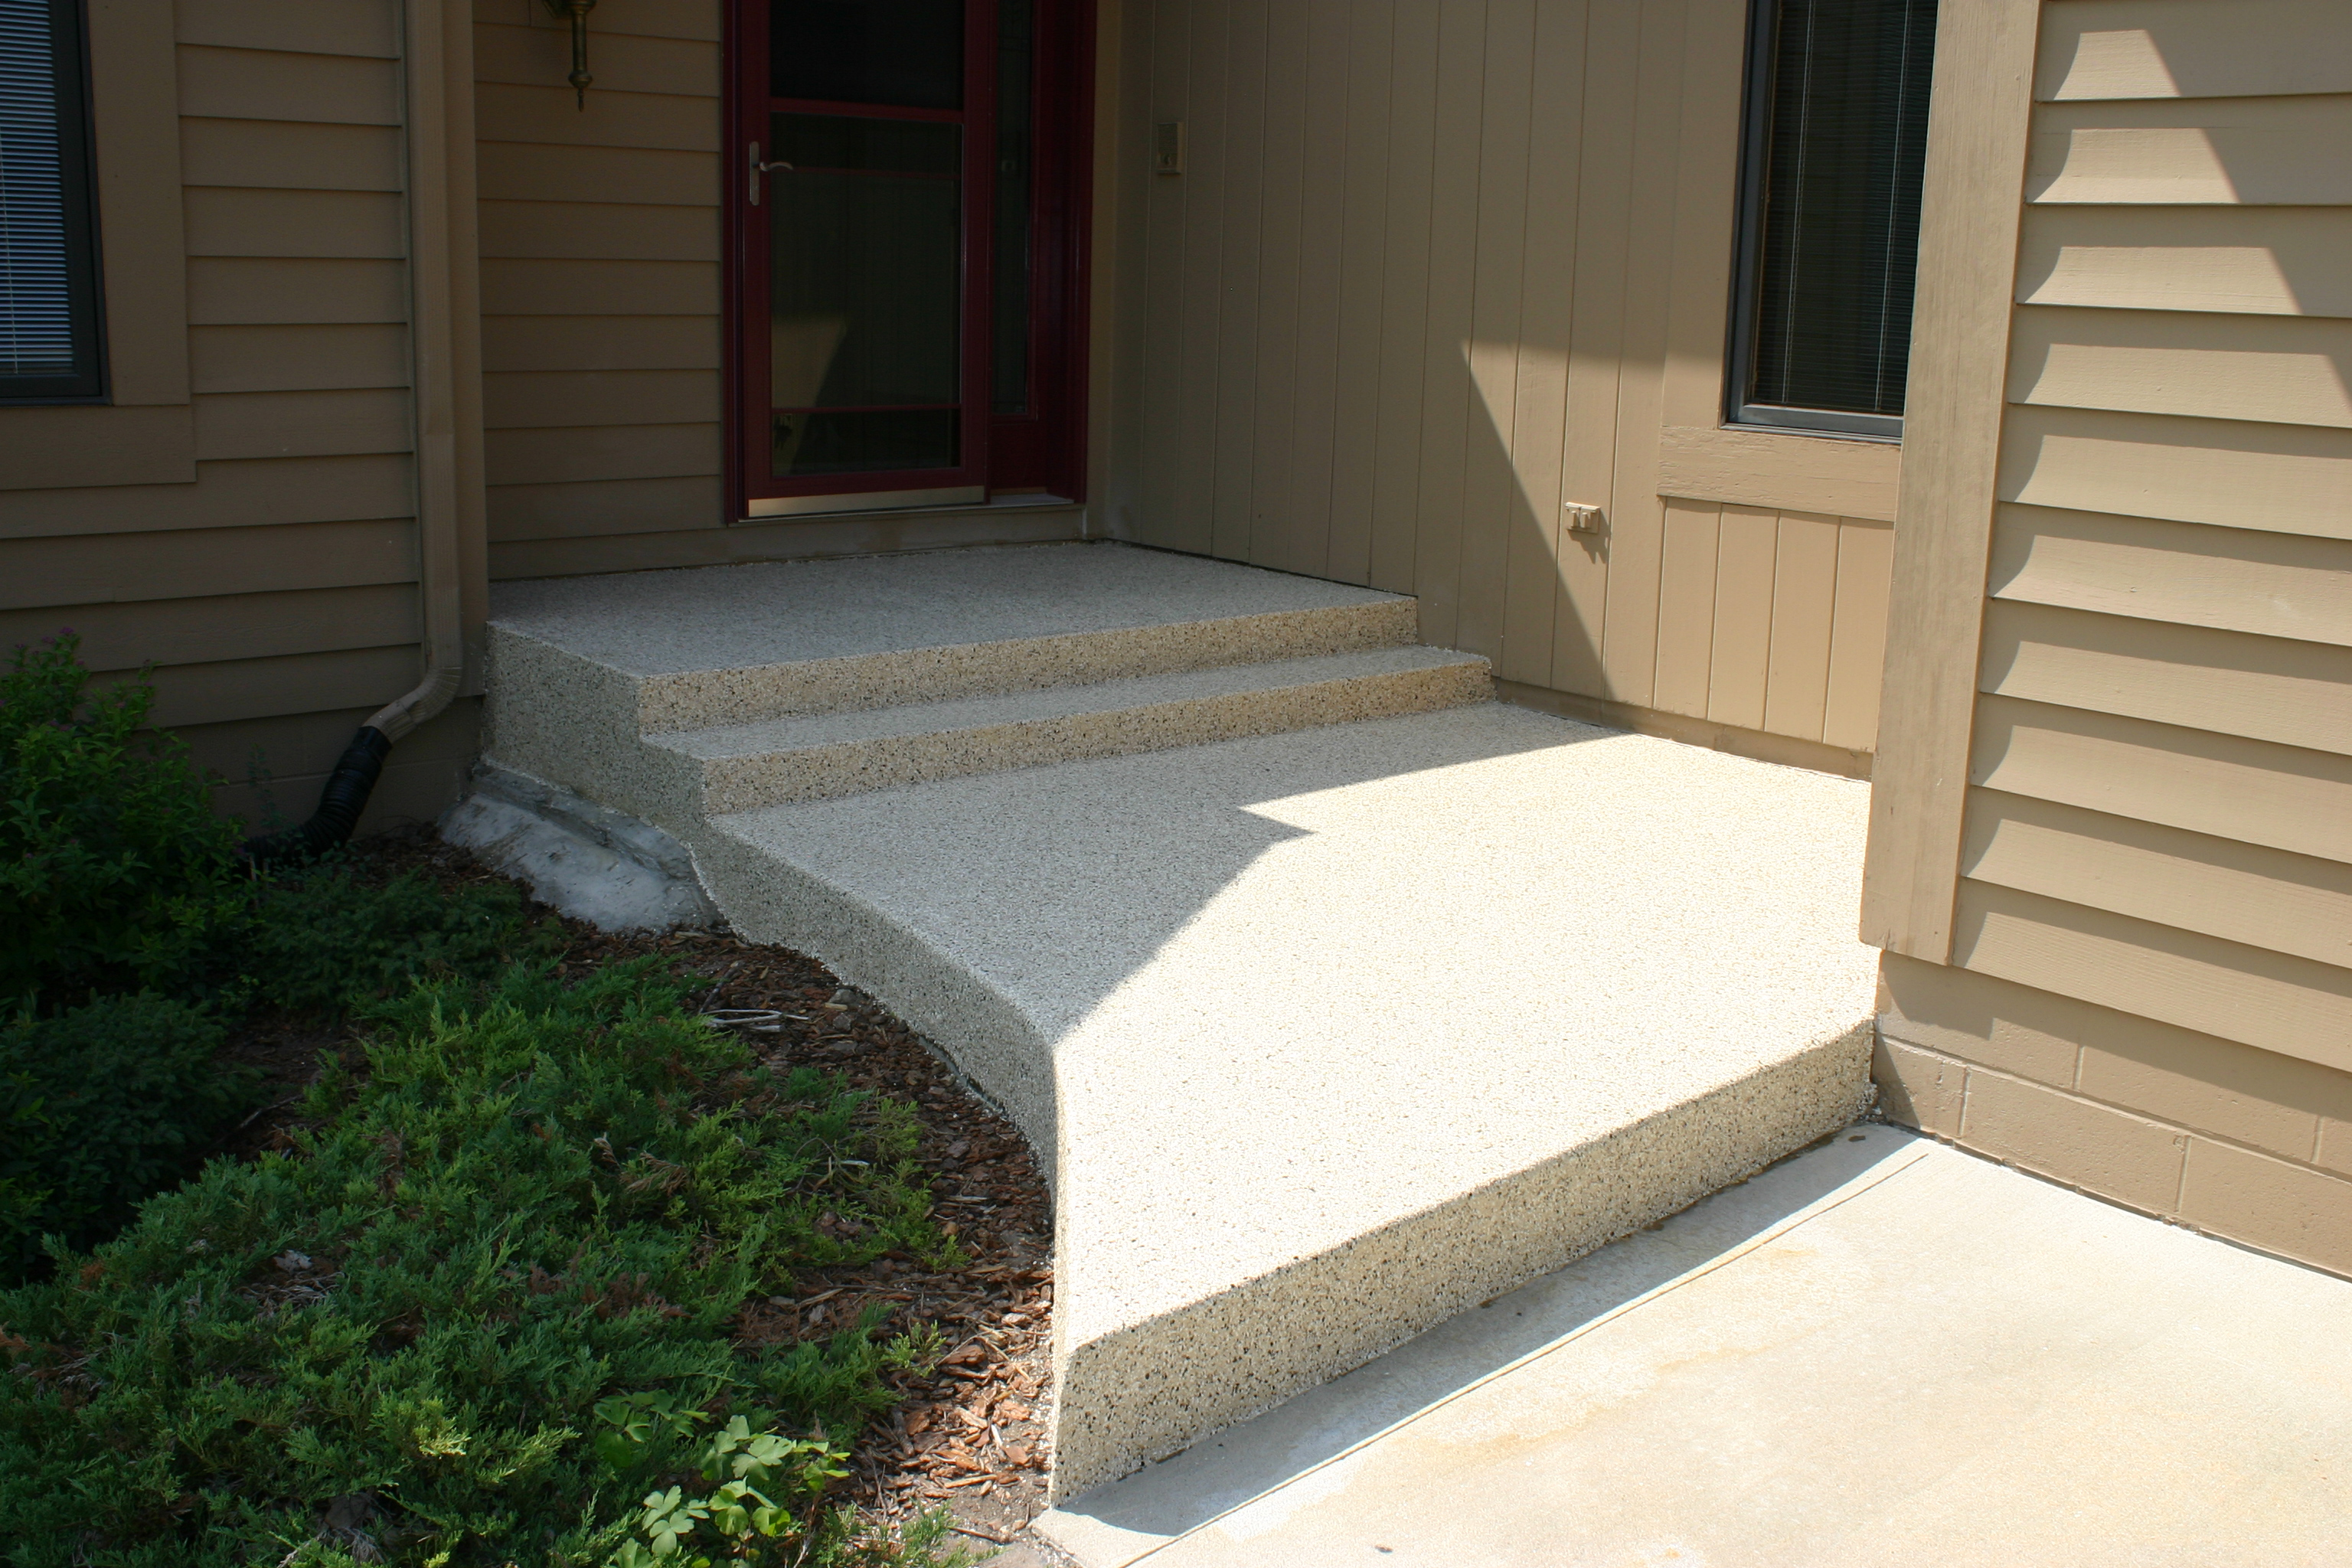 Concrete-coated front stoop